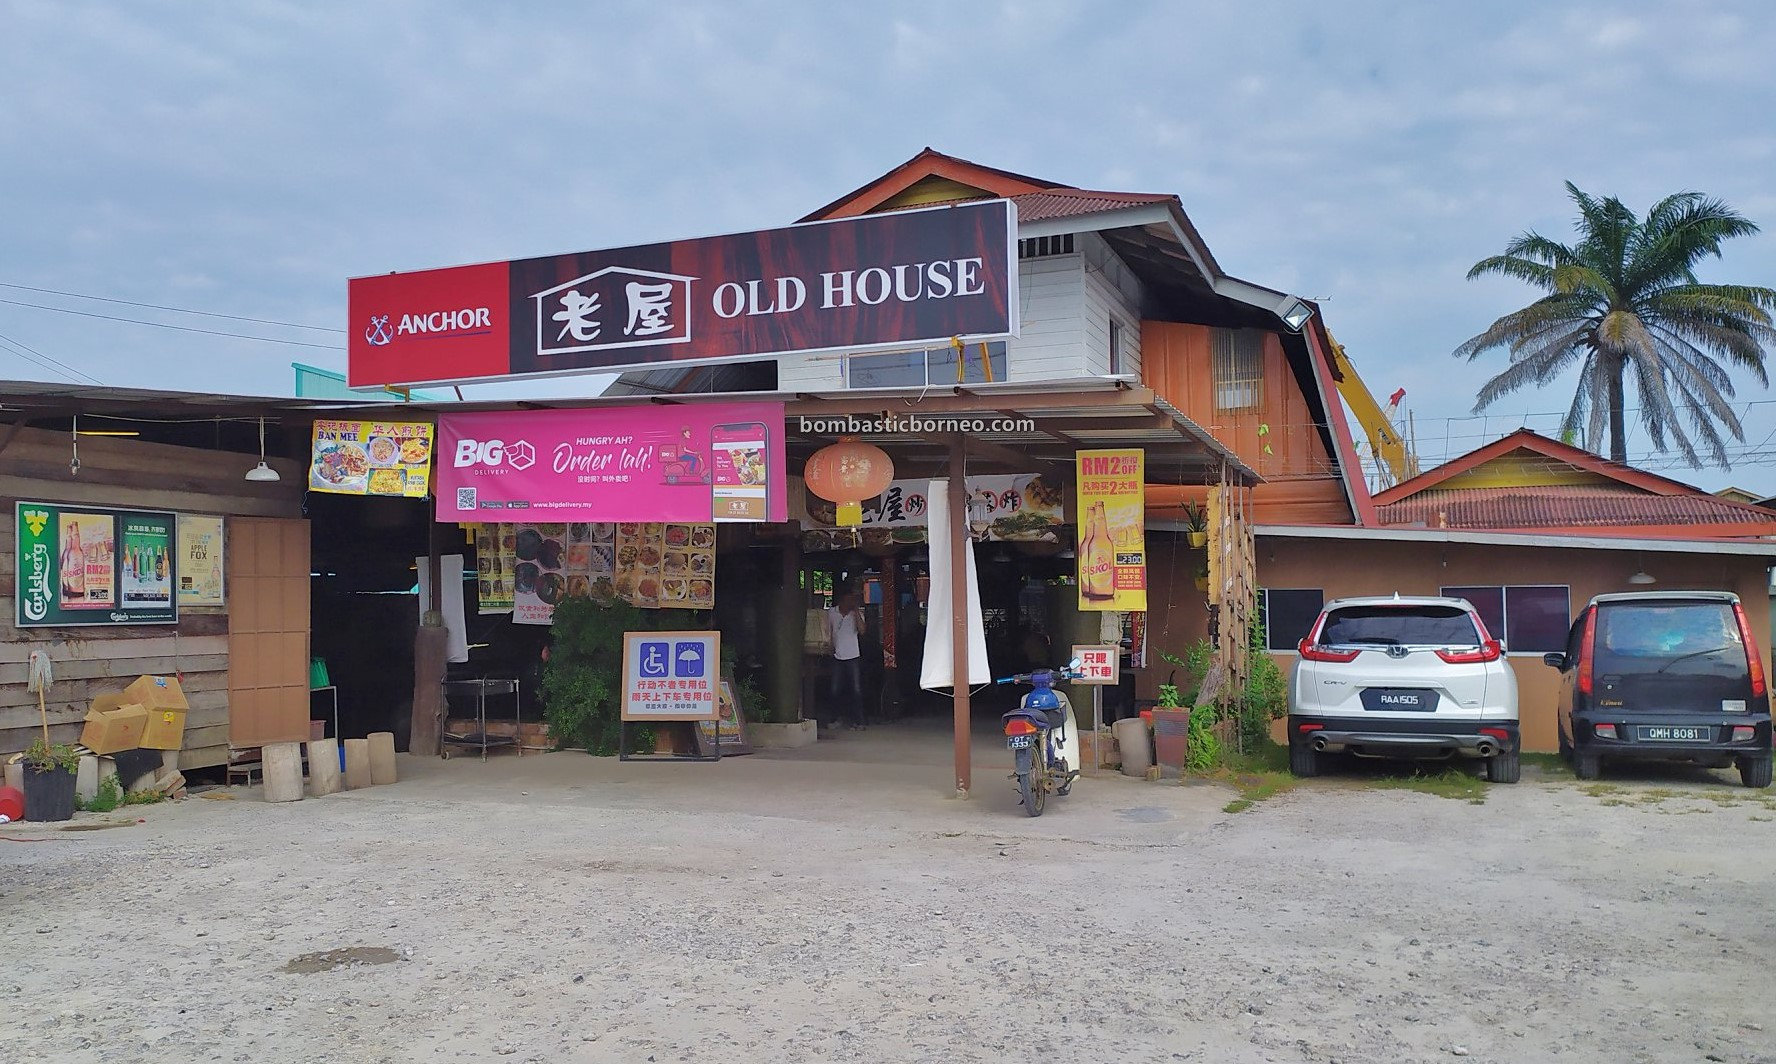 backpackers, destination, Discover Miri City, exploration, Tourism, tourist attraction, travel guide, Trans Borneo, 穿越婆罗洲马来西亚, 砂拉越美里素食,